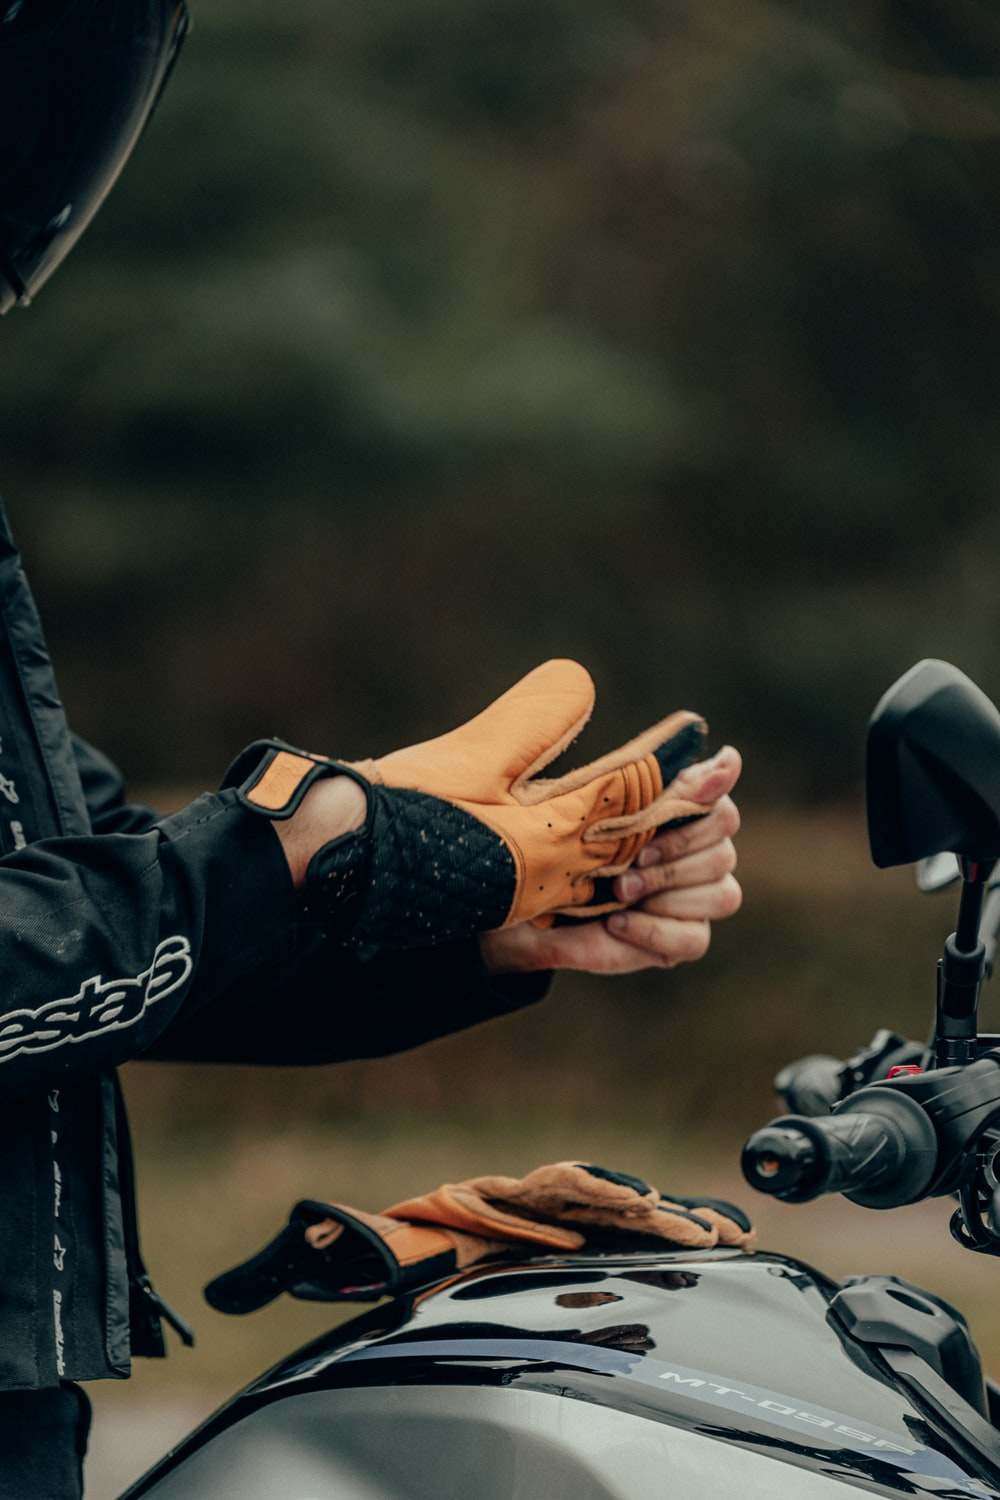 person in black leather jacket holding black and gray bicycle handle bar